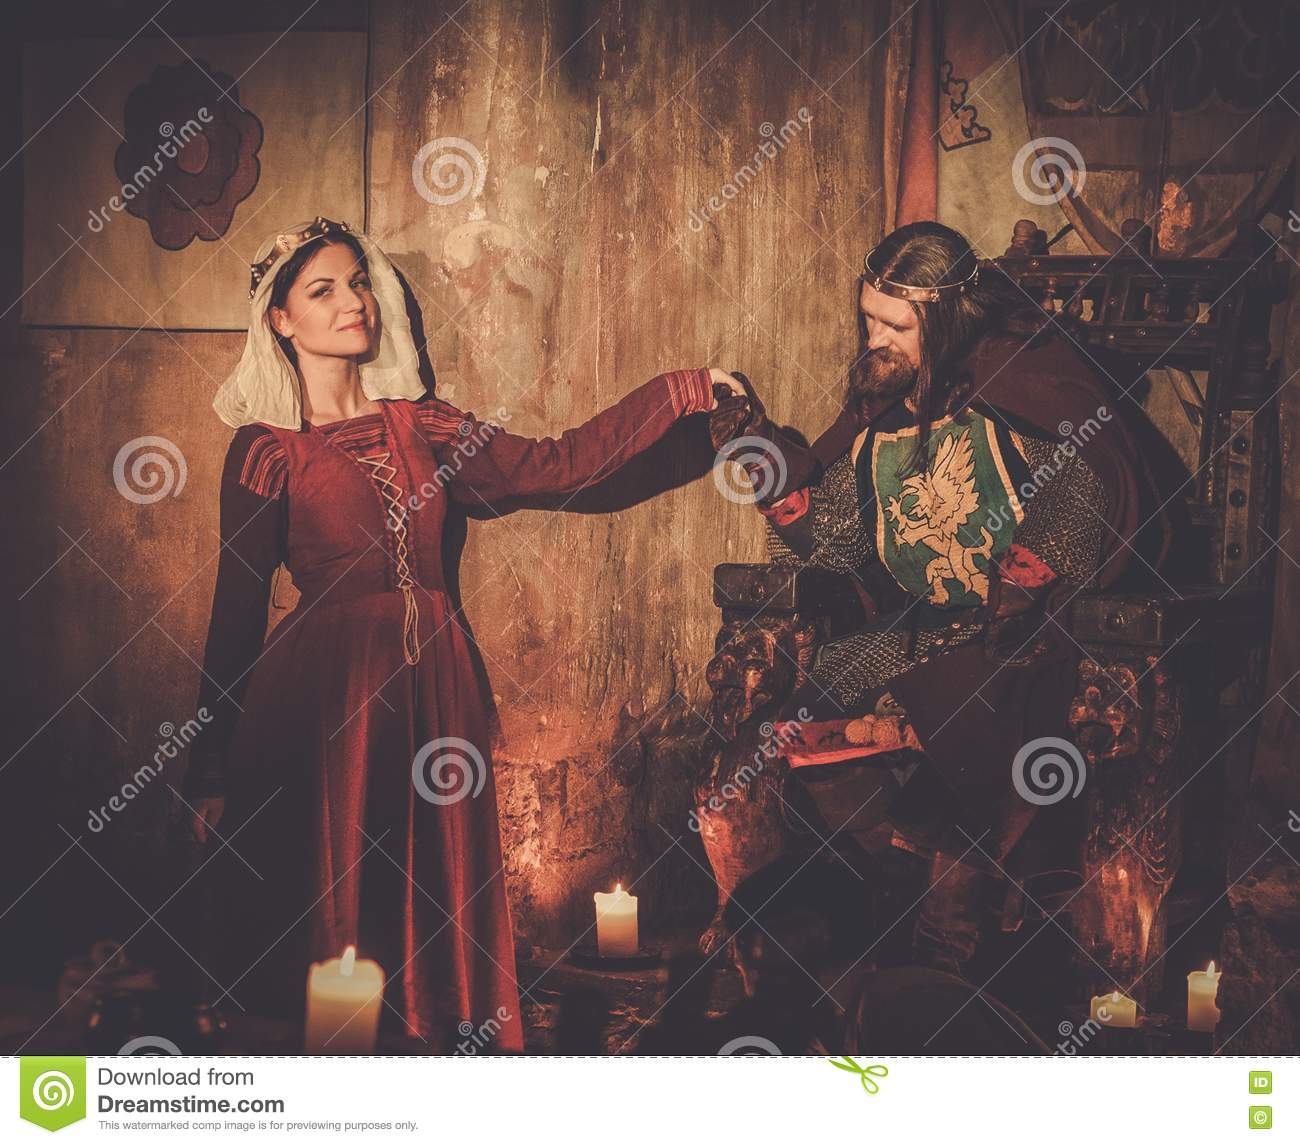 Medieval king with his queen in castle interior.